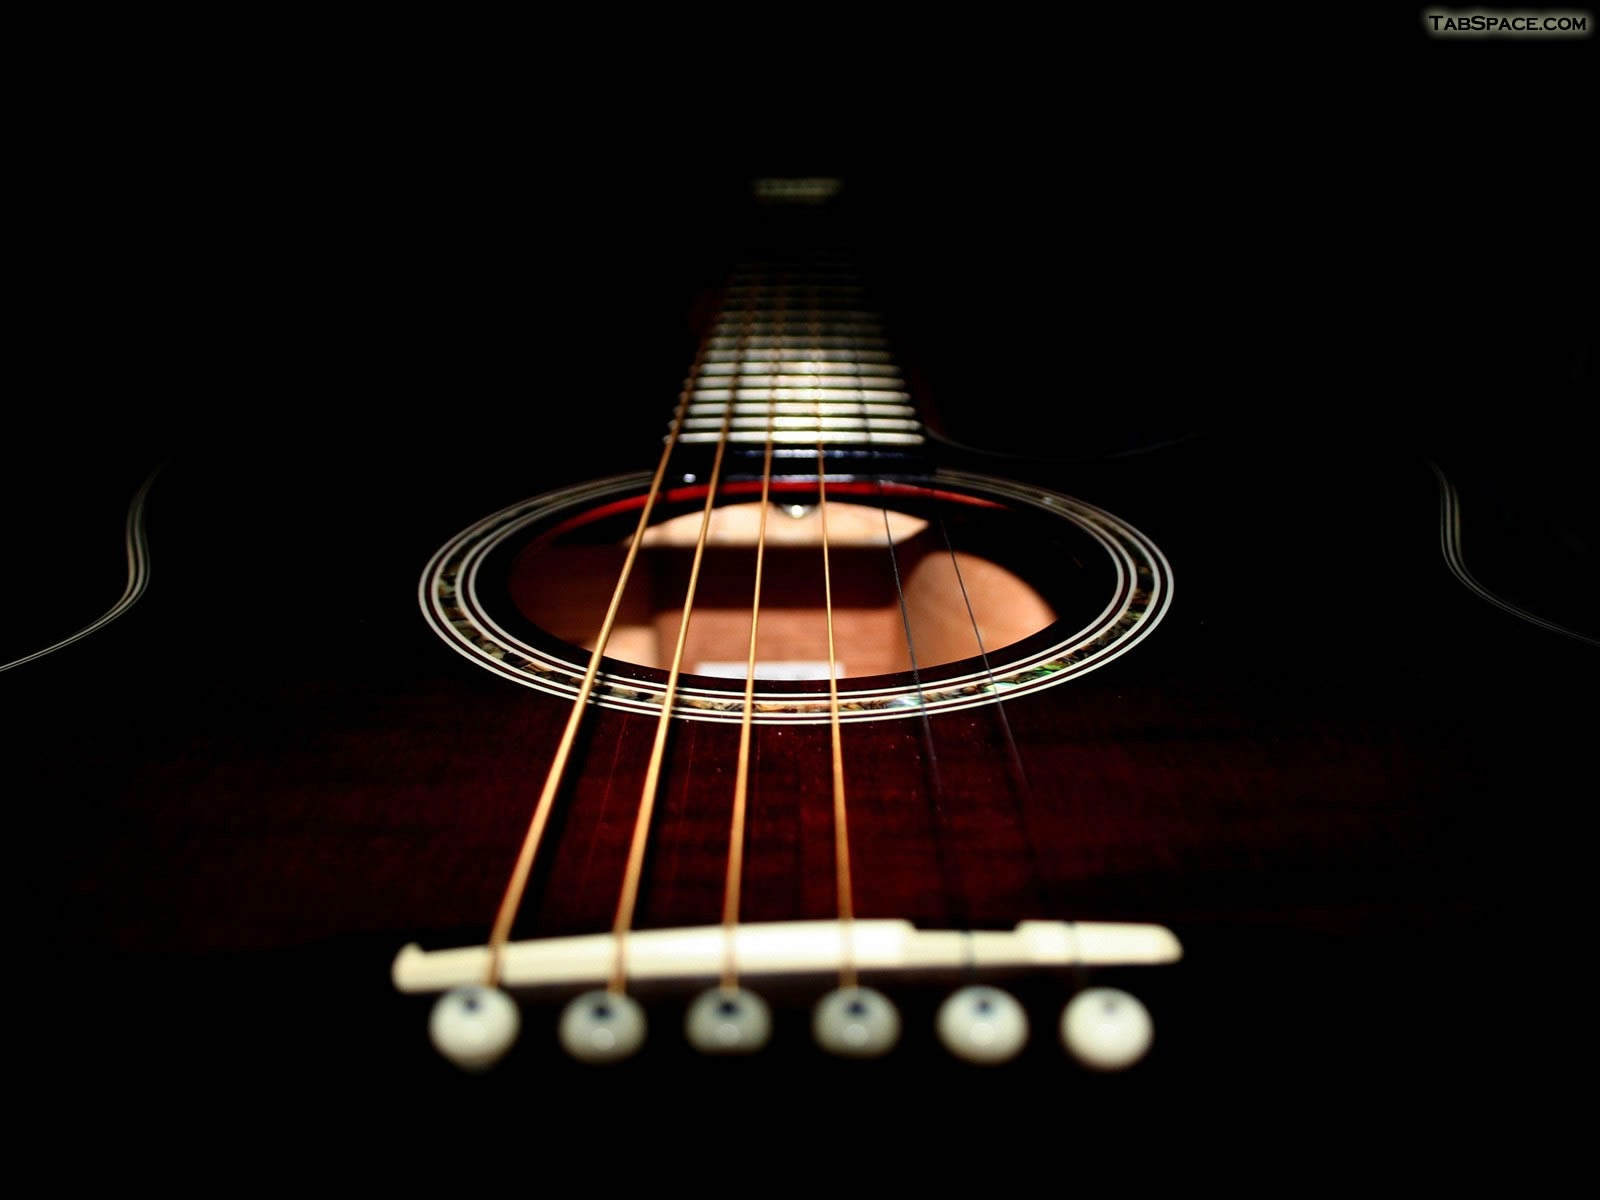 3d guitar wallpapers 49 wallpapers � adorable wallpapers